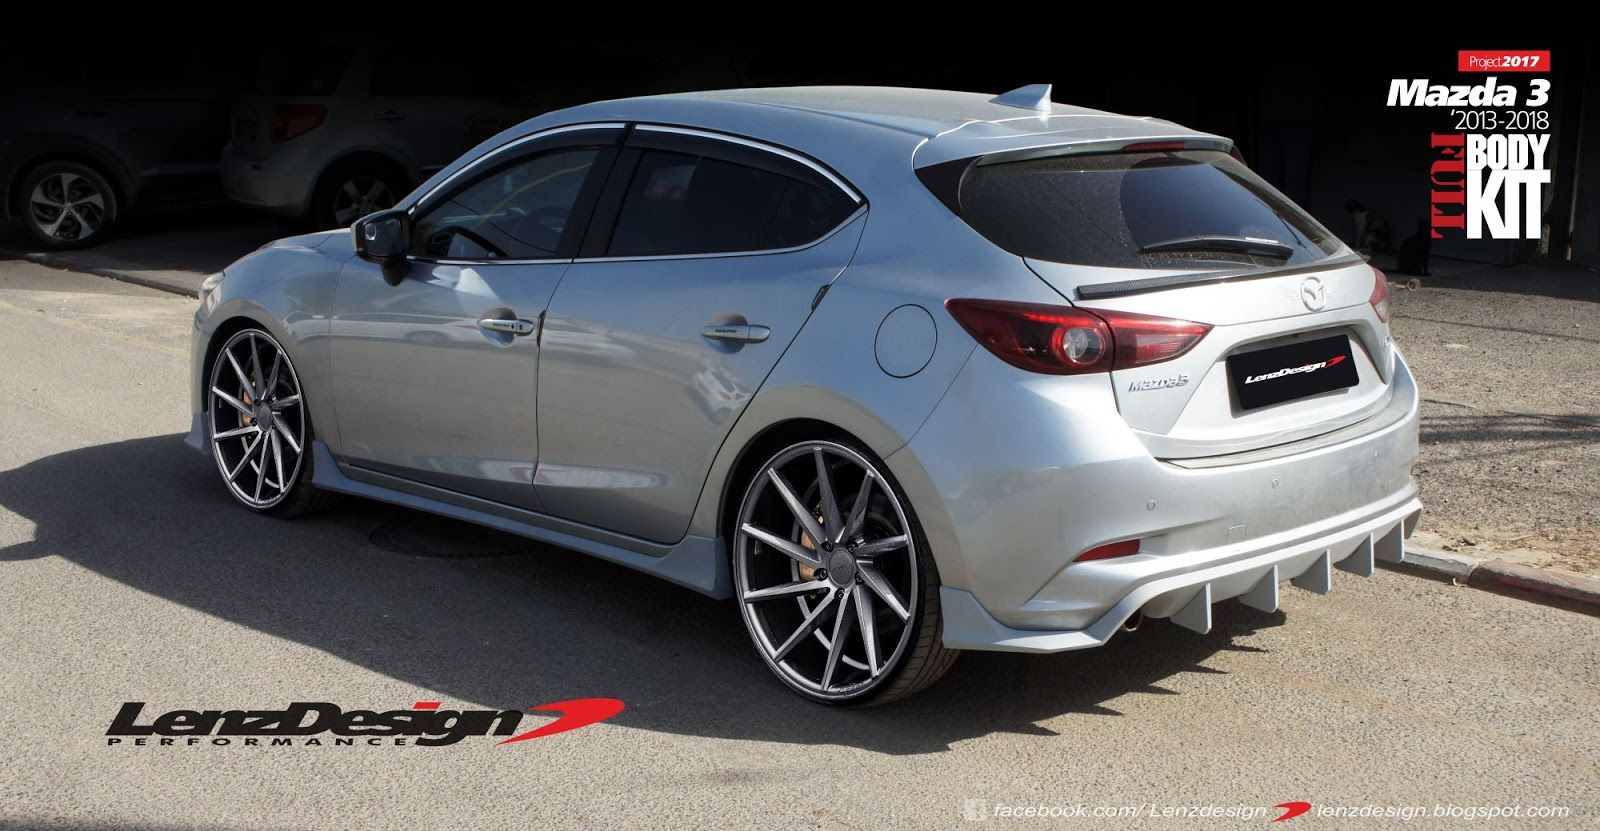 Mazda 3 BM Axela Hatchback Body Kit U0026 Tuning Lenzdesign Performance 2013  2014 2015 2016 2017